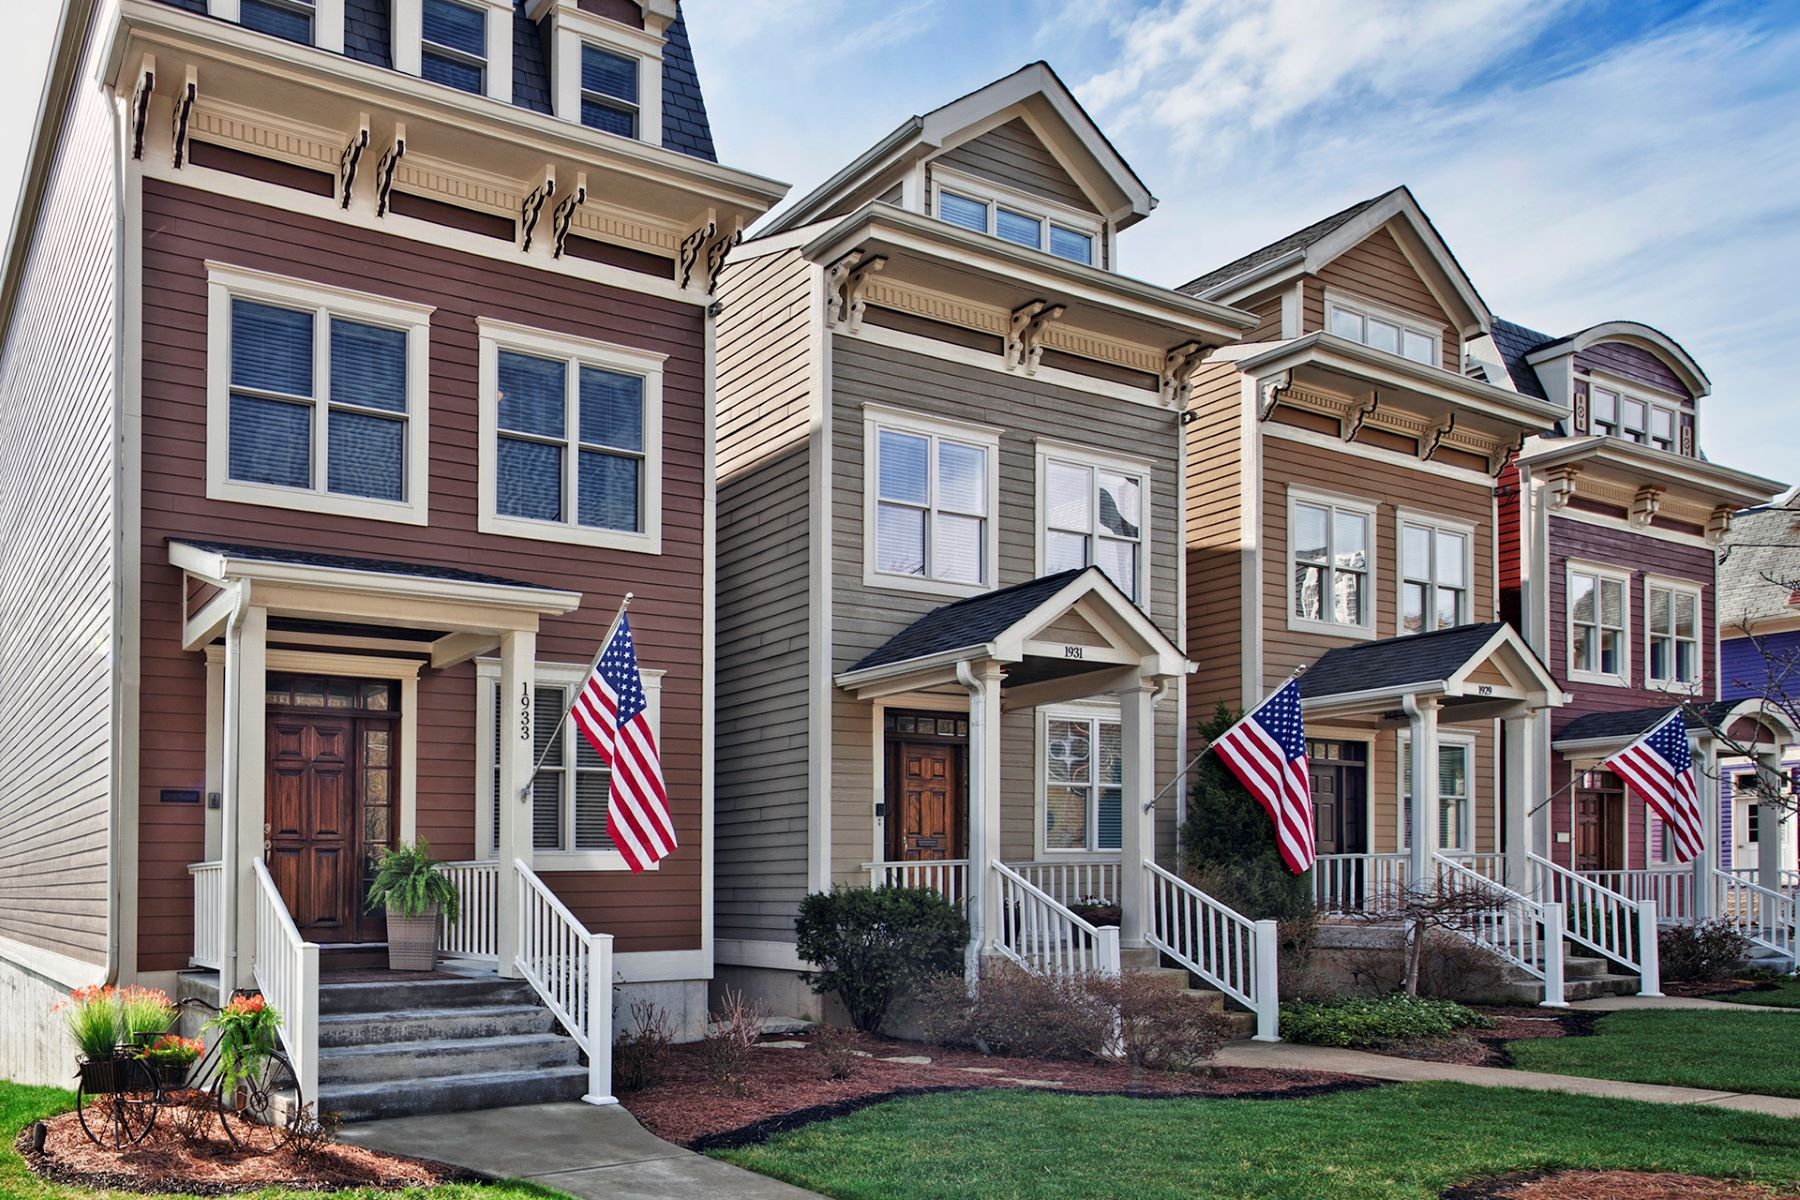 Single Family Homes for Sale at Riverfront Home 1931 Riverside Dr Cincinnati, Ohio 45202 United States